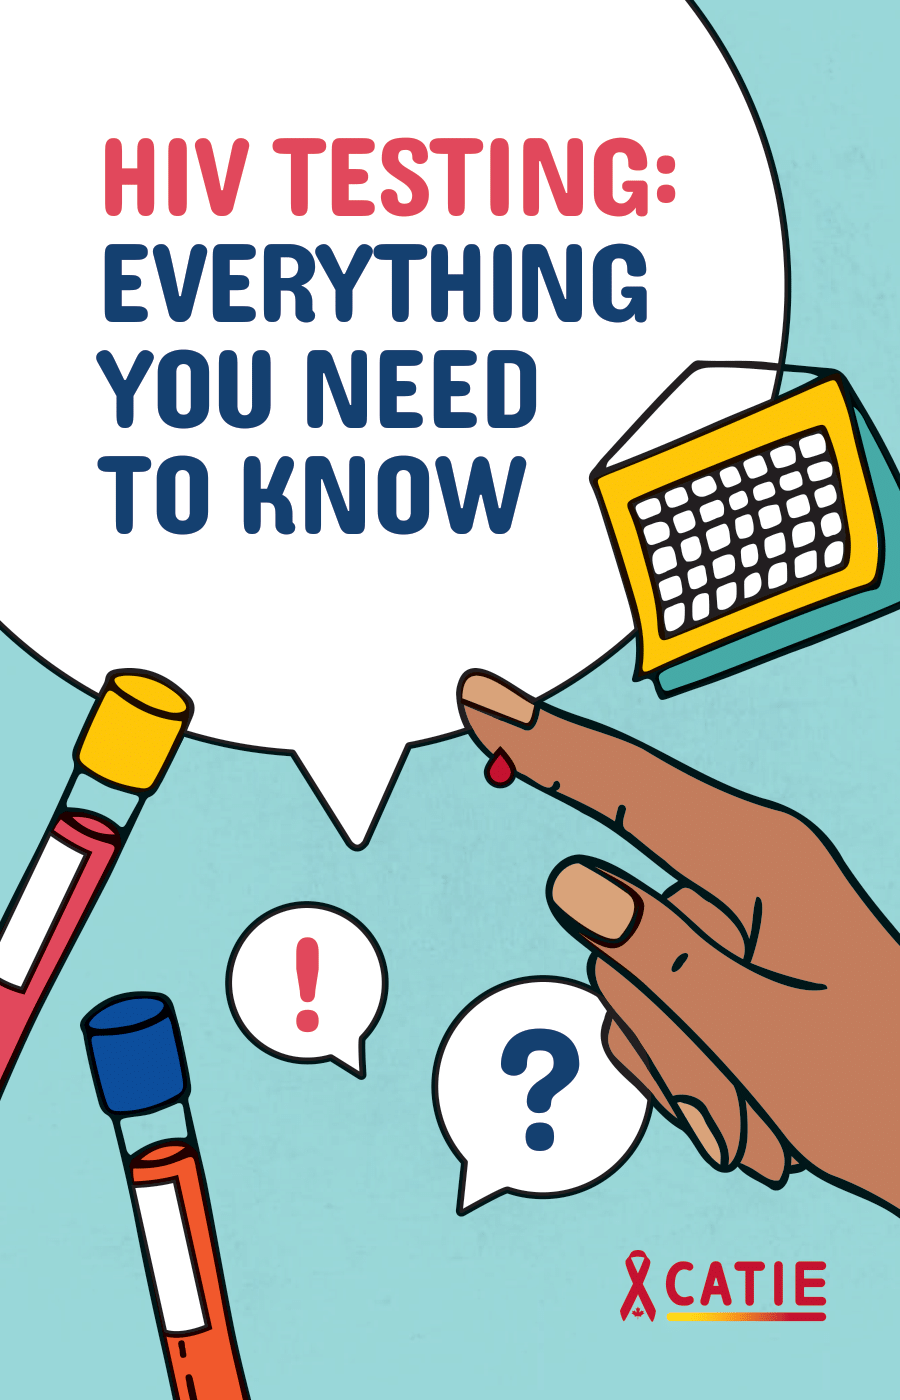 HIV Testing: Everything you need to know Image